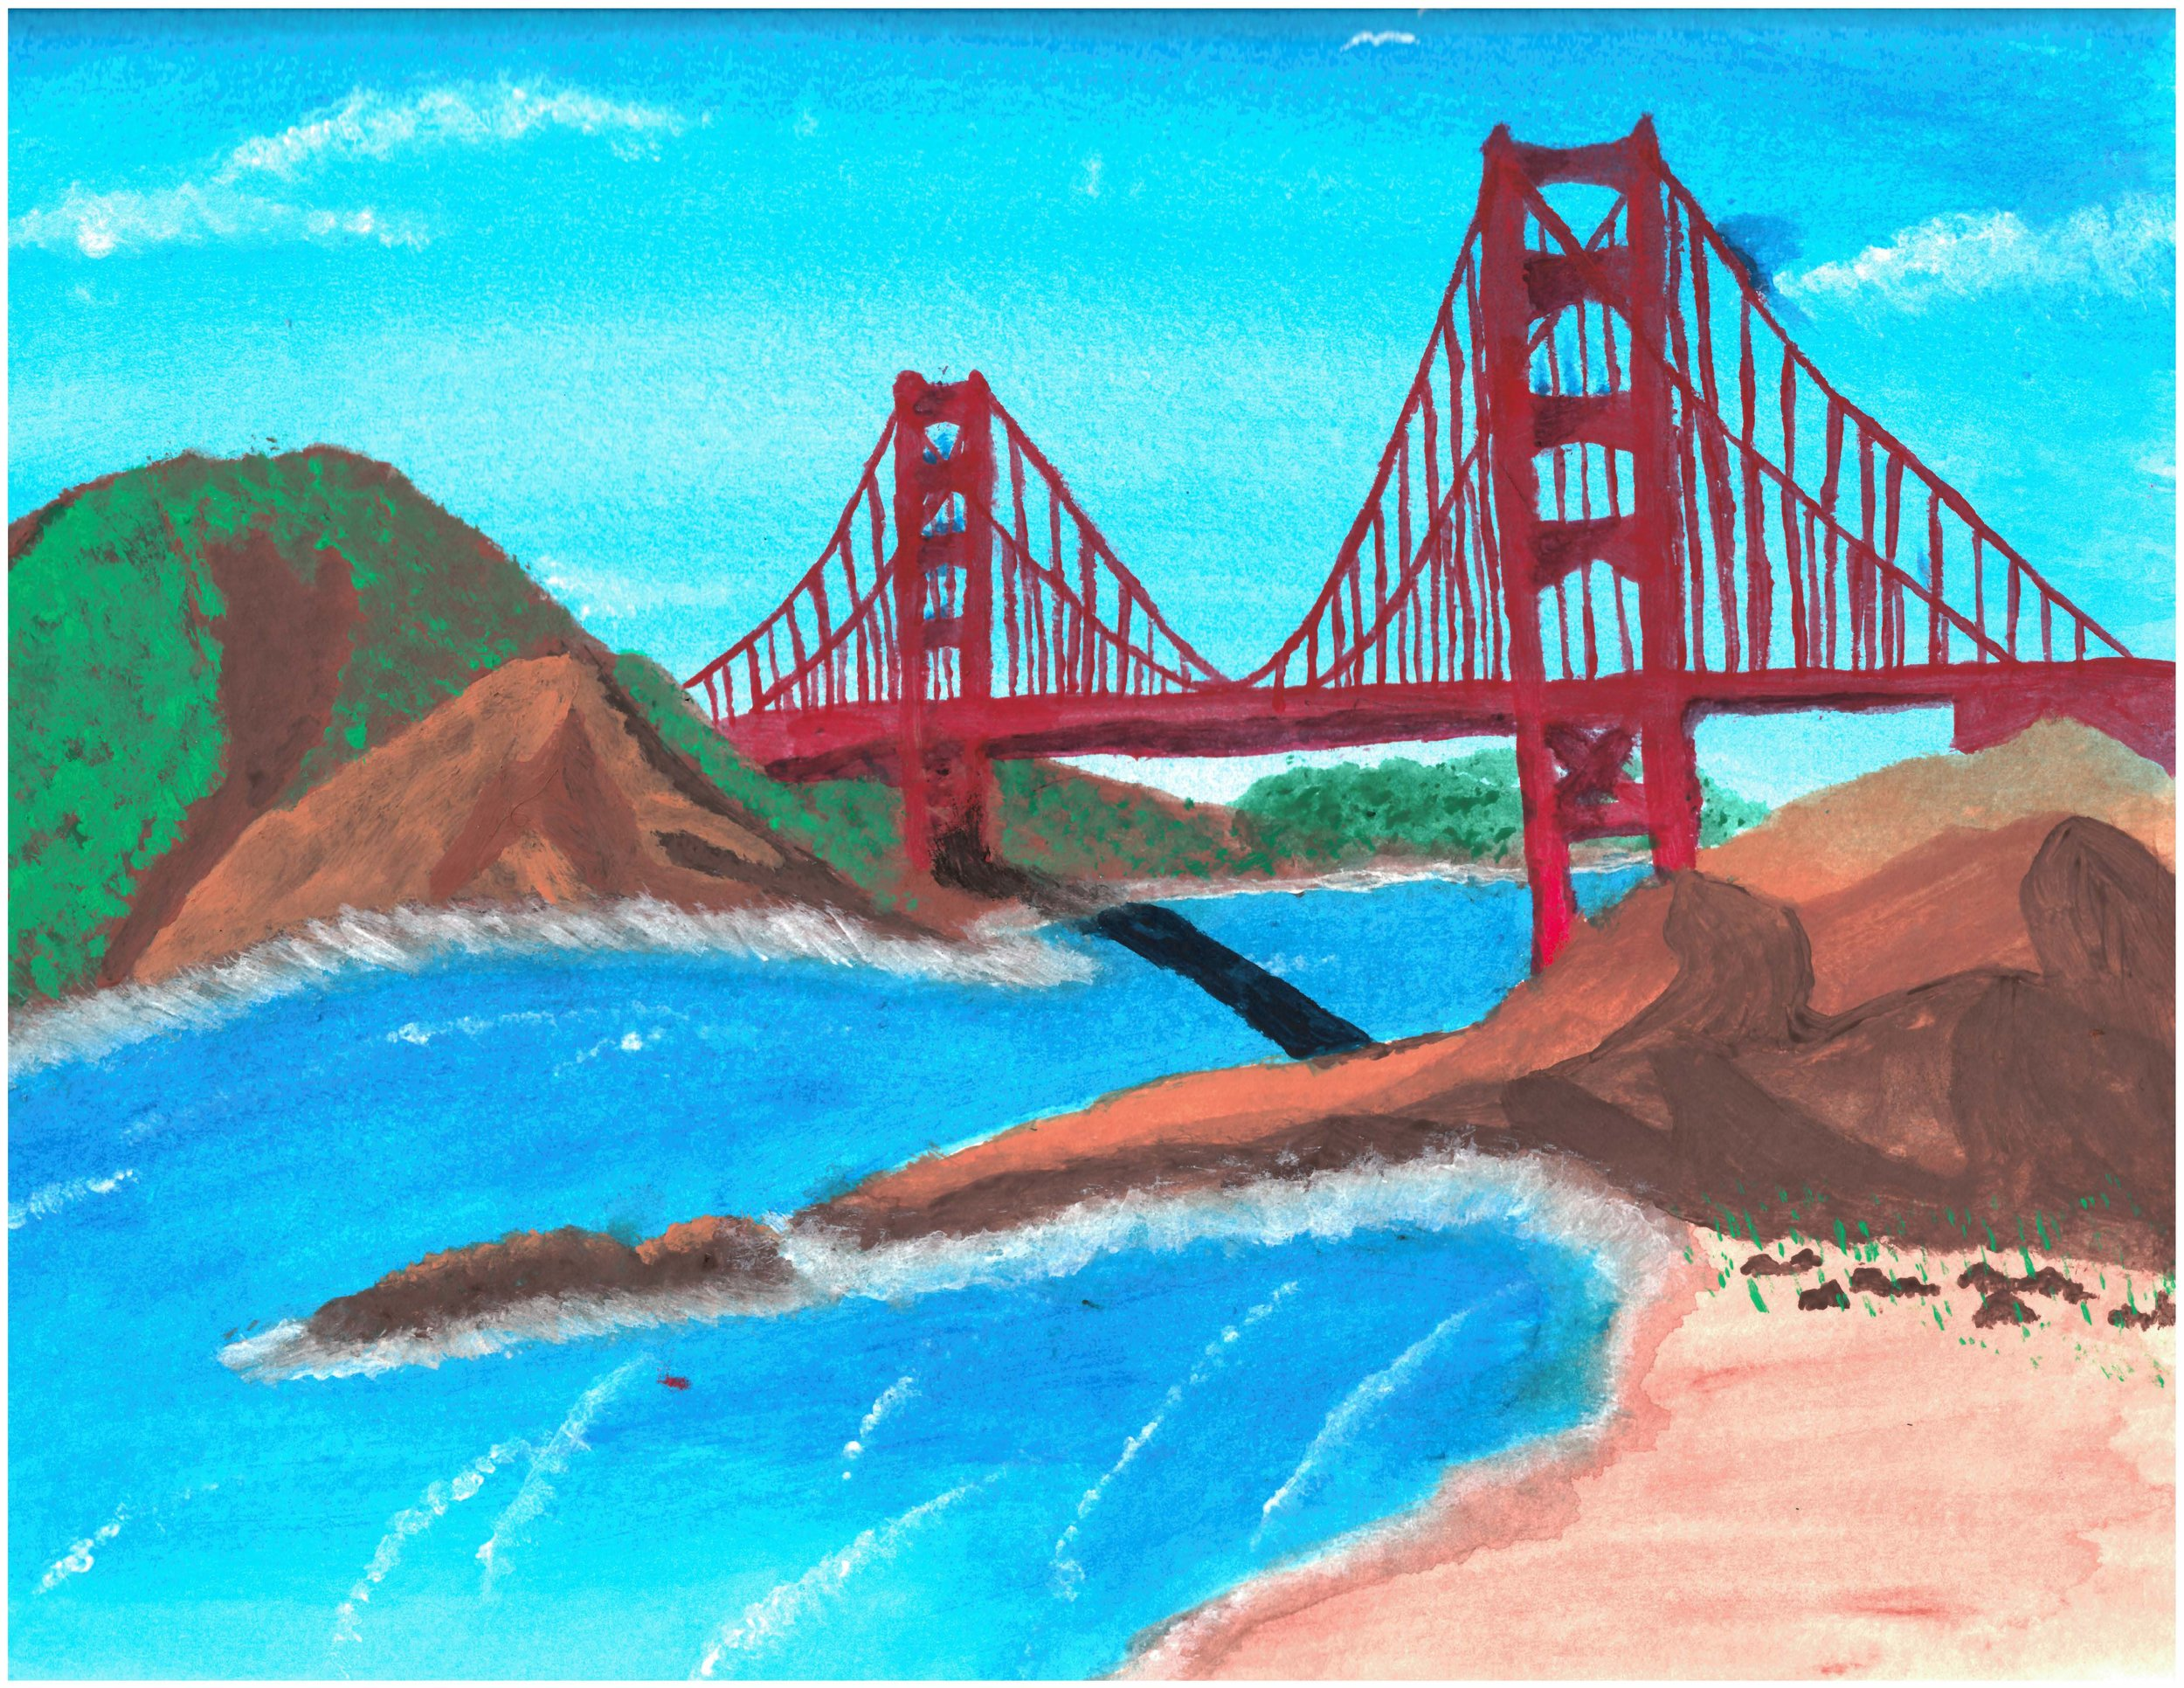 Overall winner, 'The Golden Treasure of San Francisco', by Antonio N. age 14